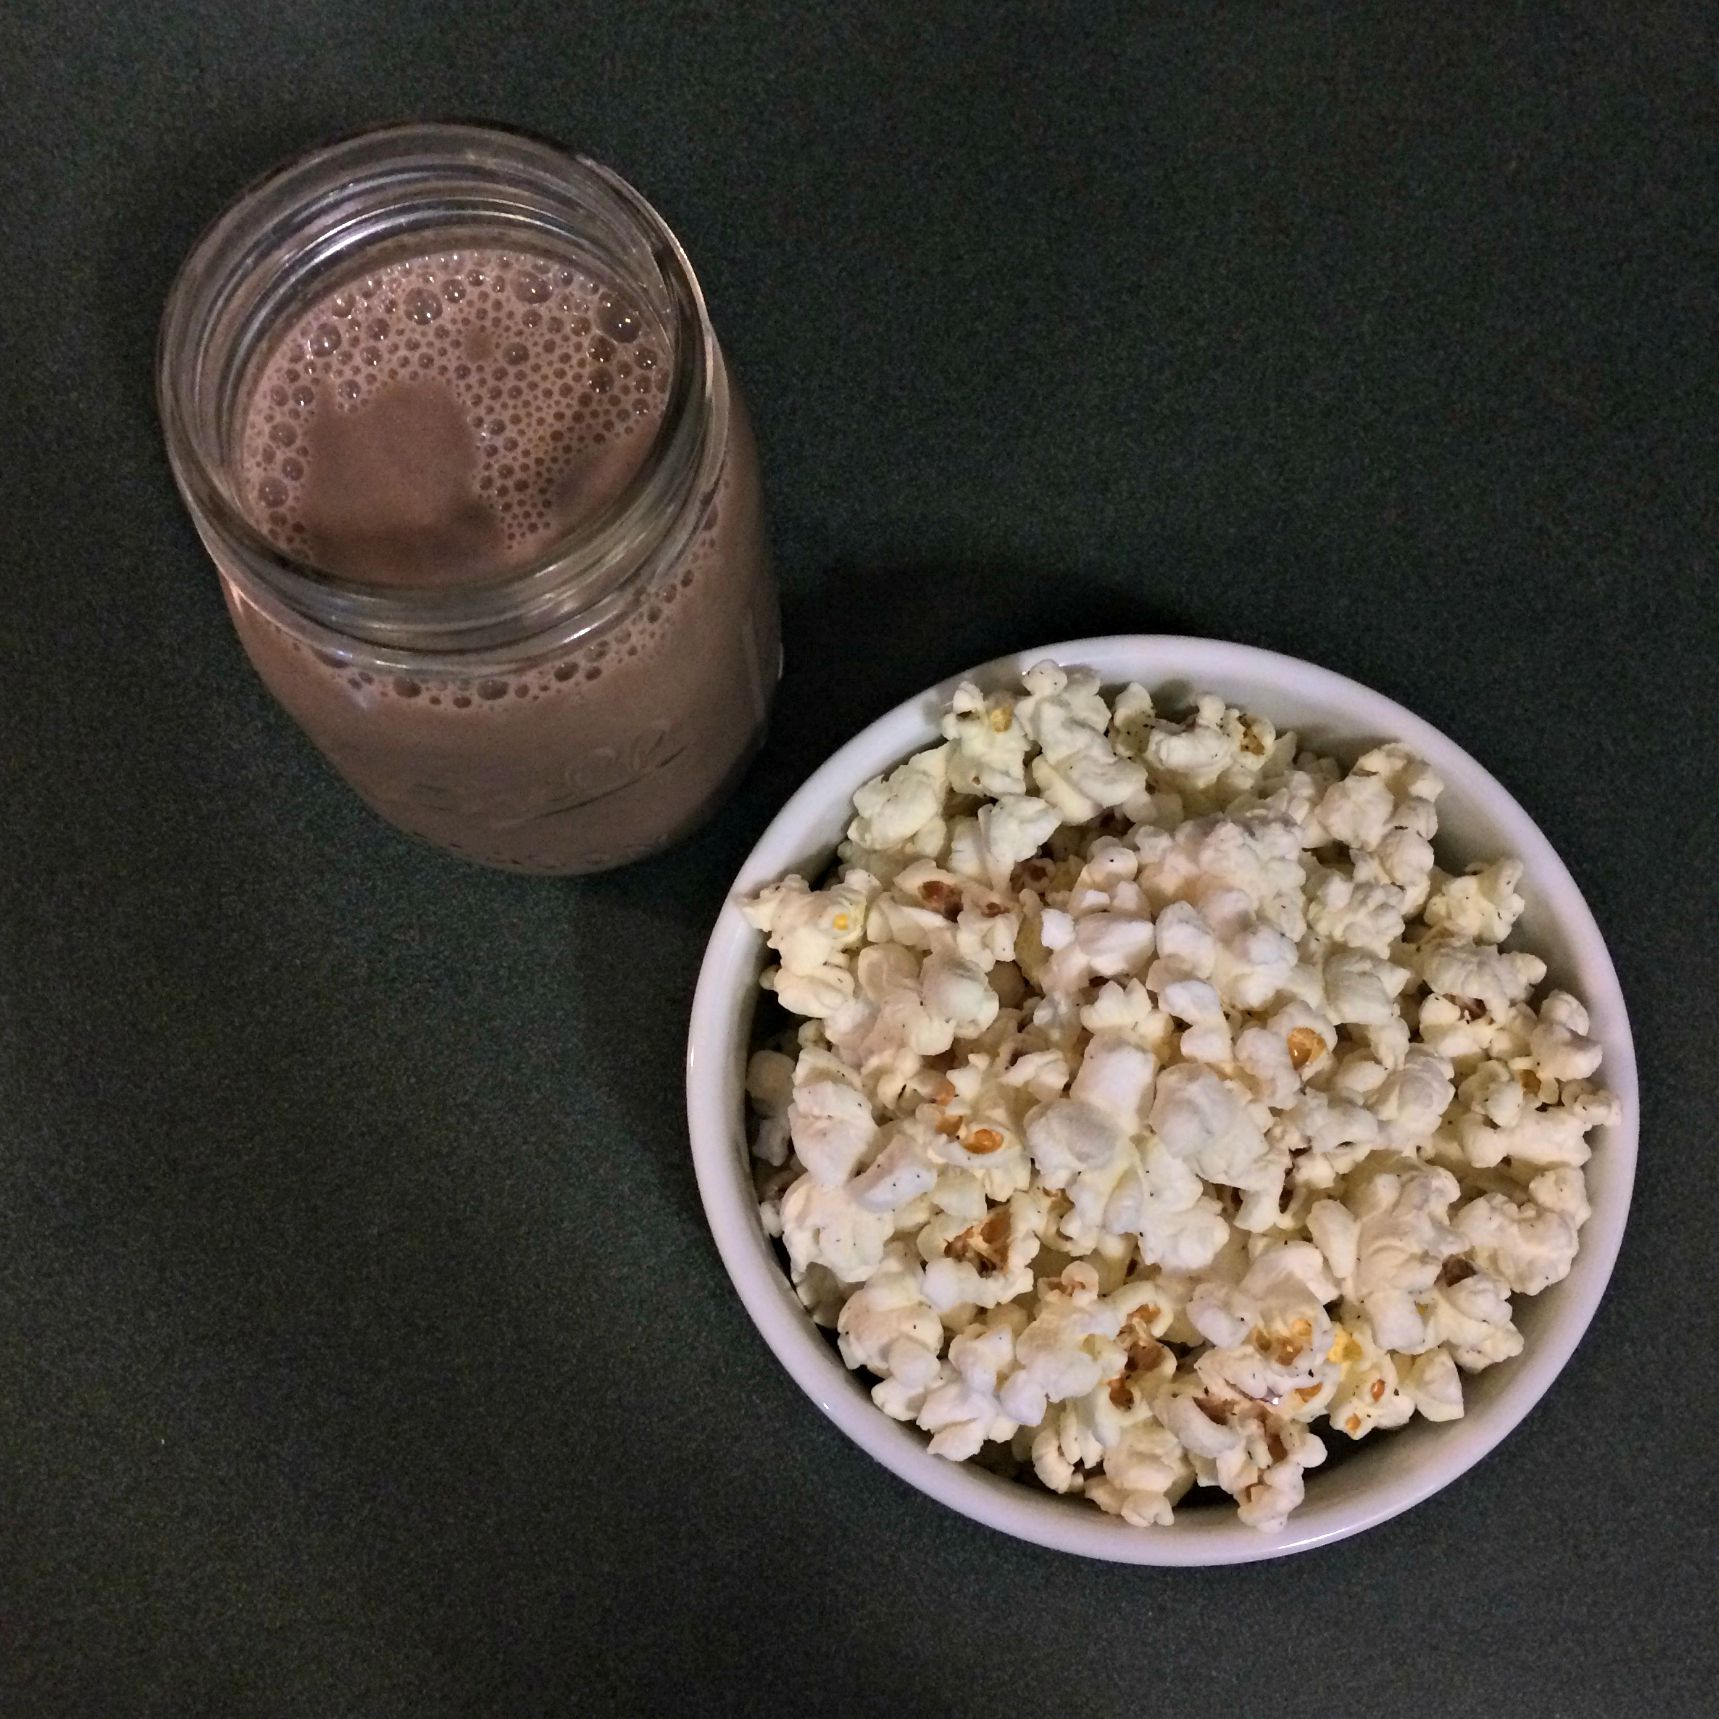 chocolate almond milk with skinny pop popcorn